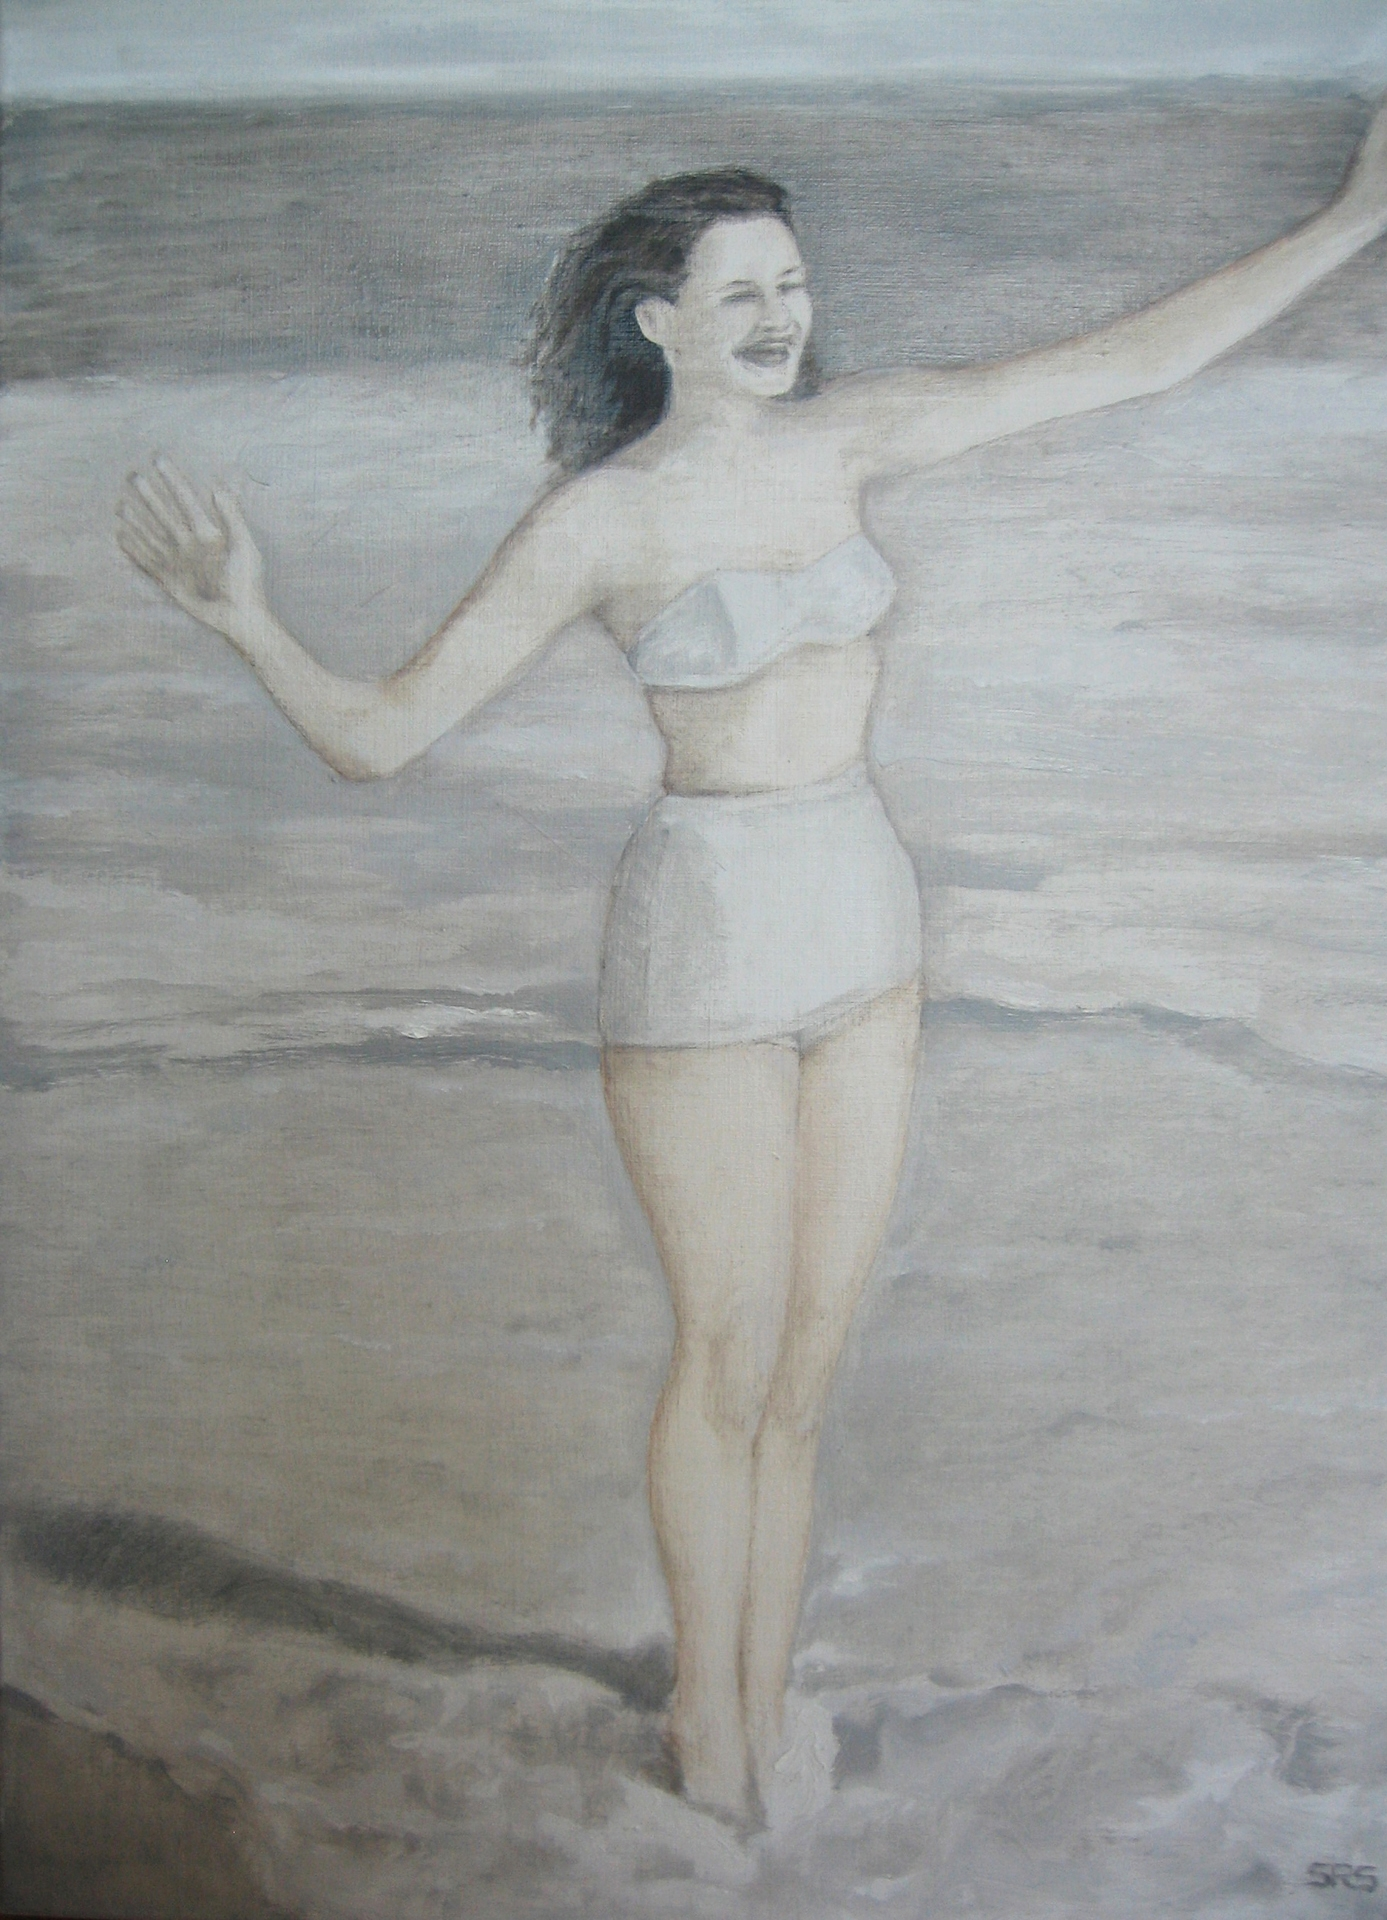 Lady at Water's Edge, 2015